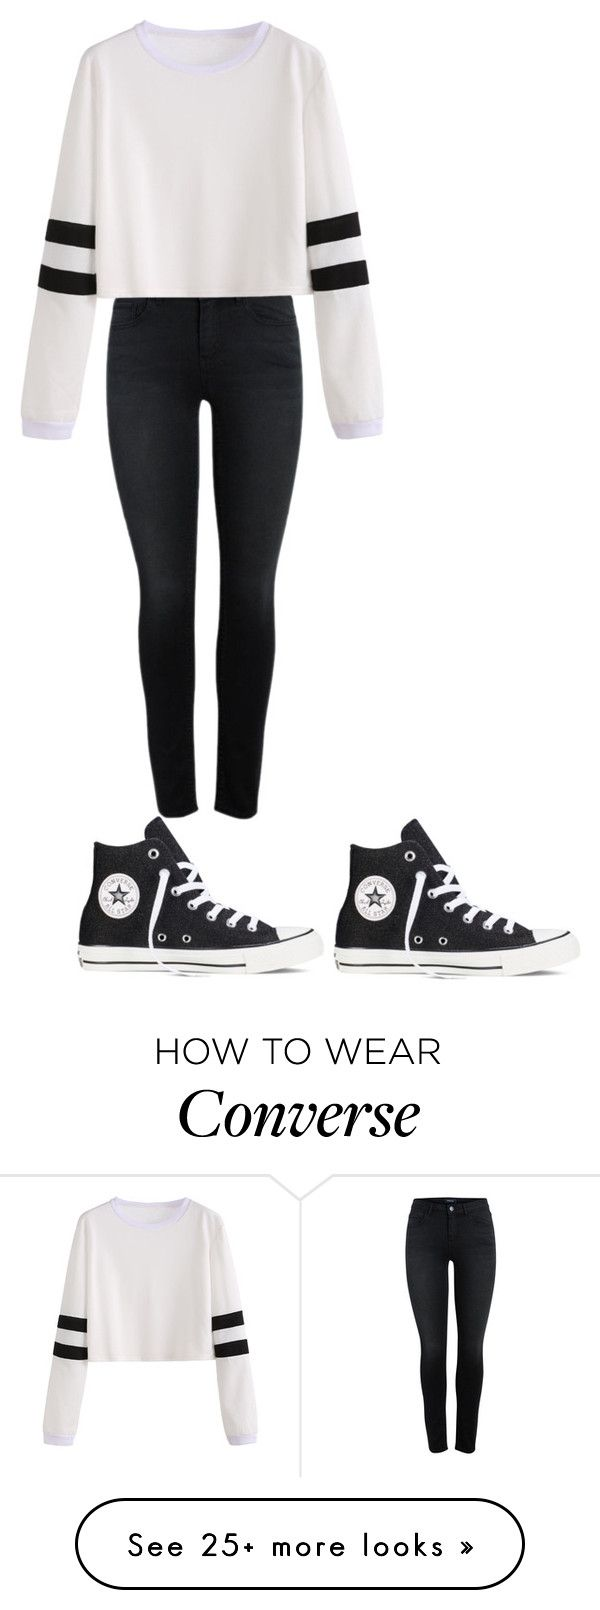 """Untitled #483"" by brain-cosand on Polyvore featuring Converse"